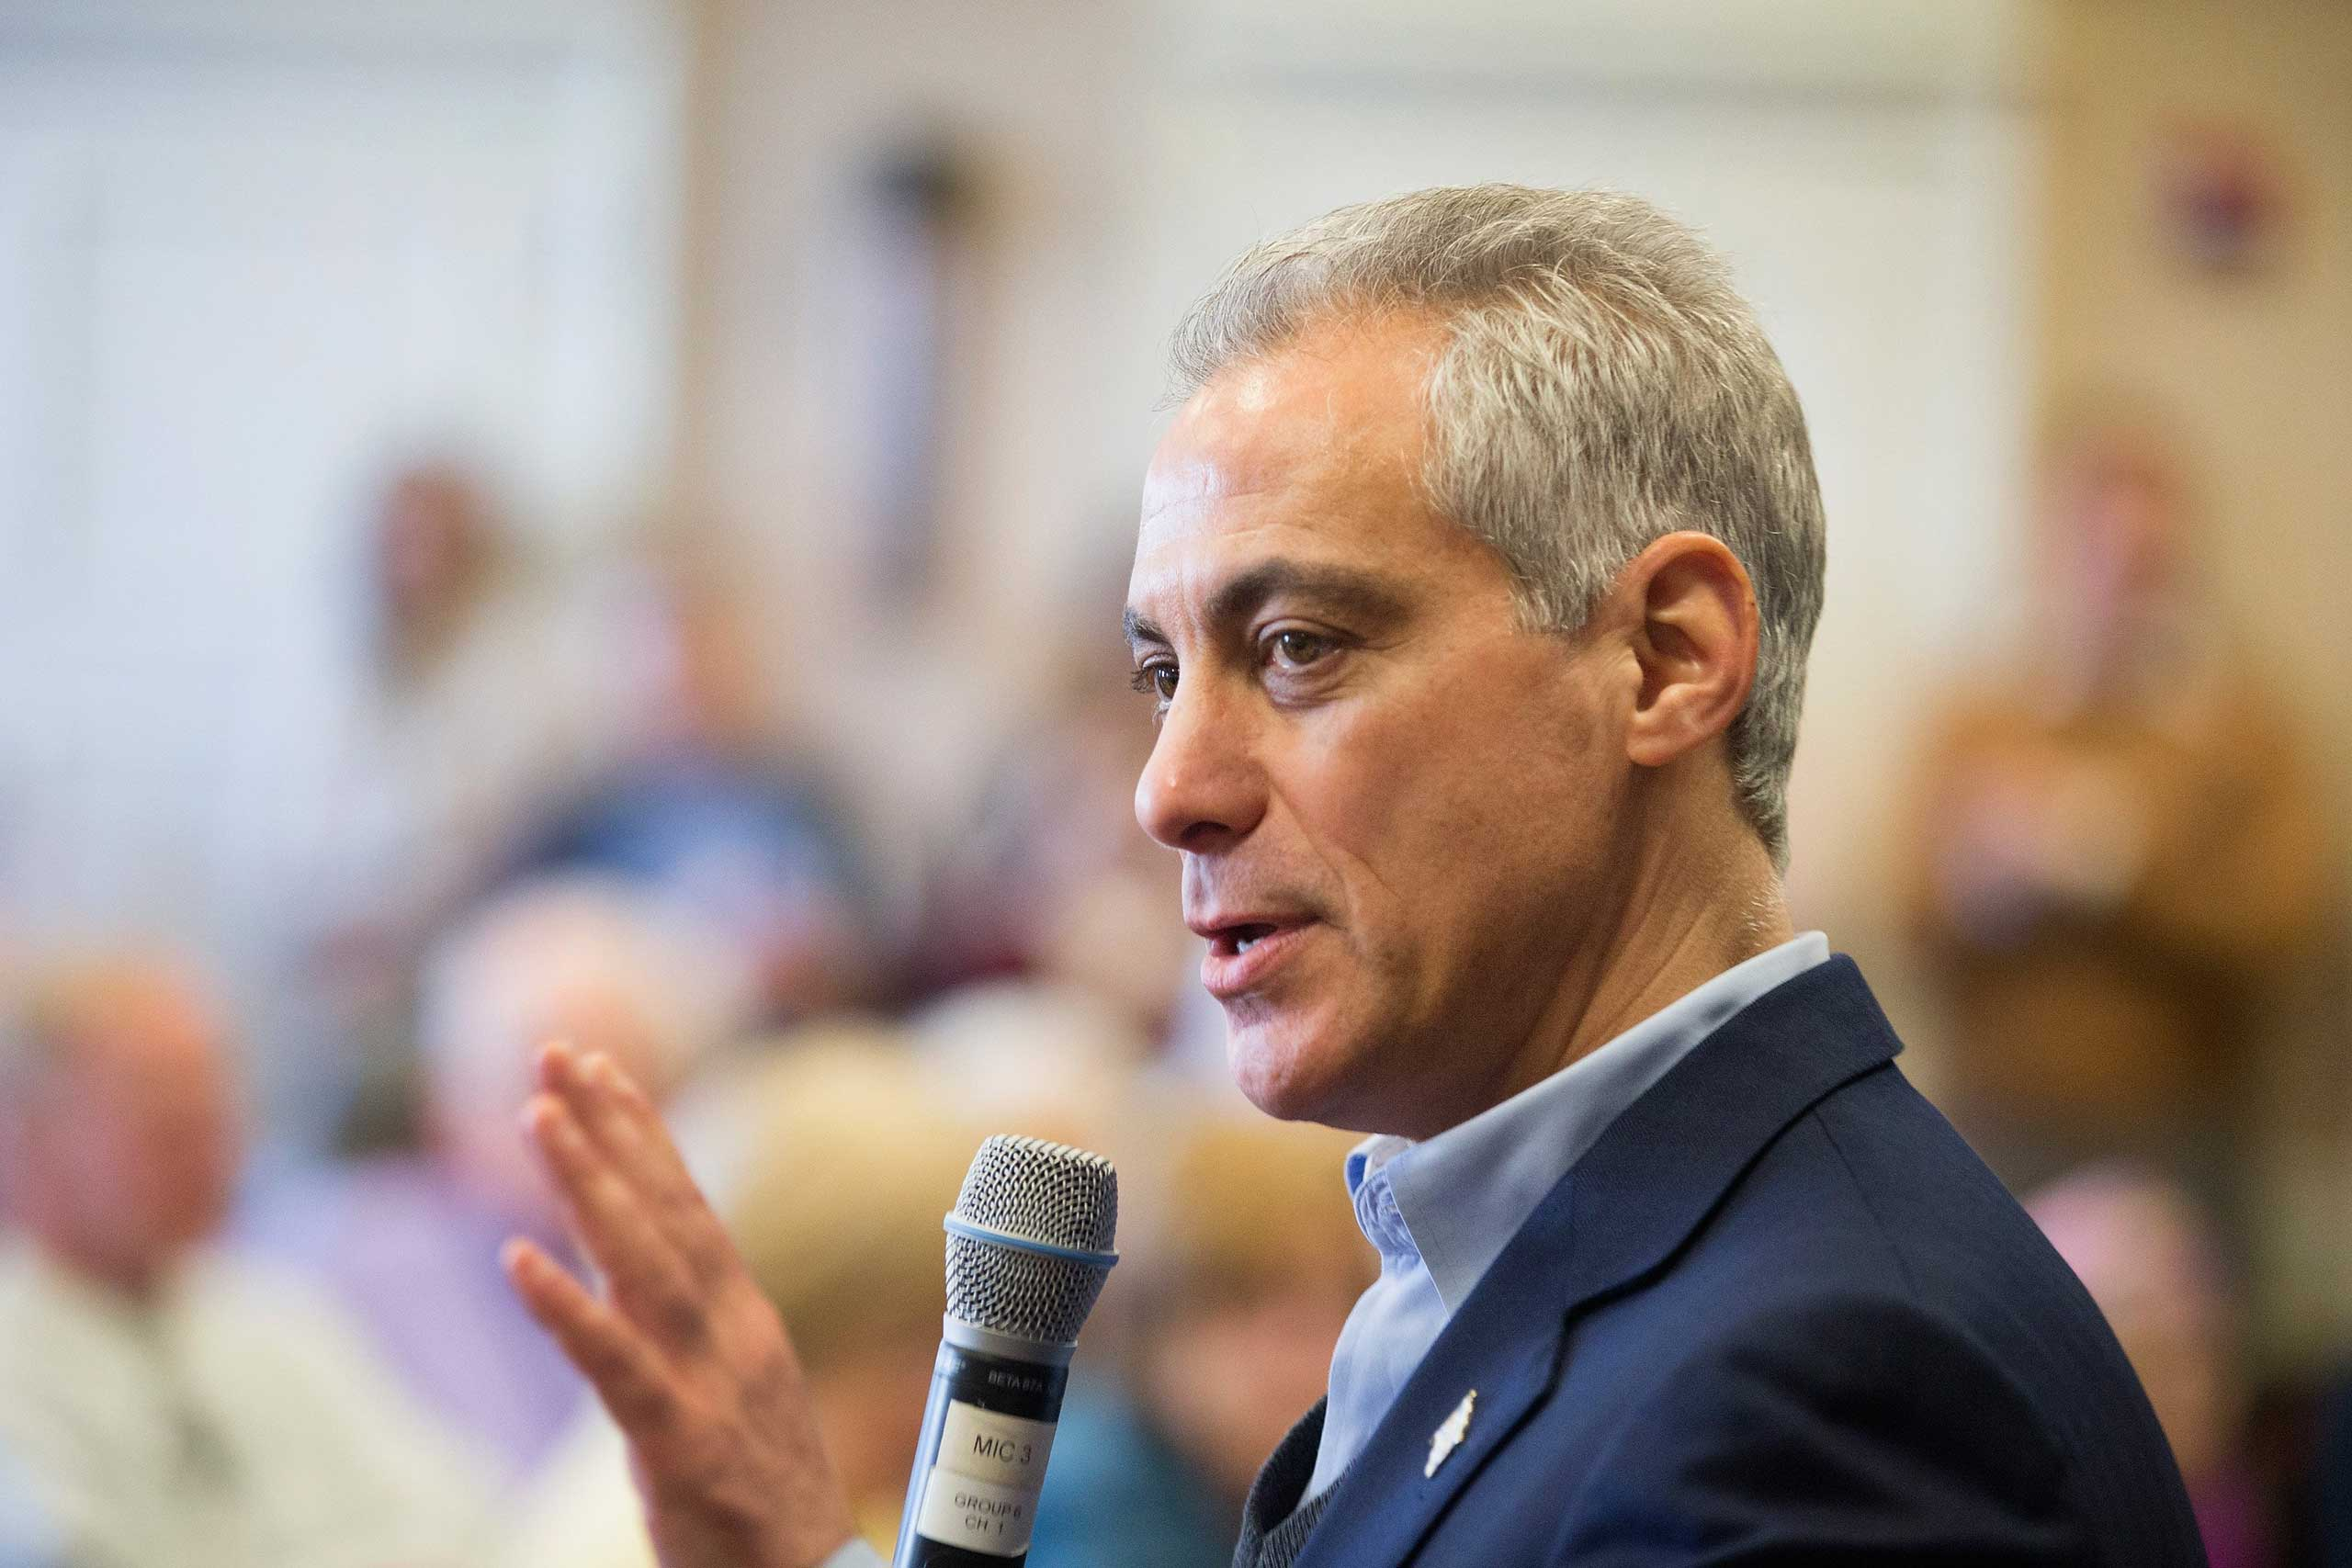 Chicago Mayor Rahm Emanuel talks with residents at a senior living center during a campaign stop on Feb. 23, 2015 in Chicago.